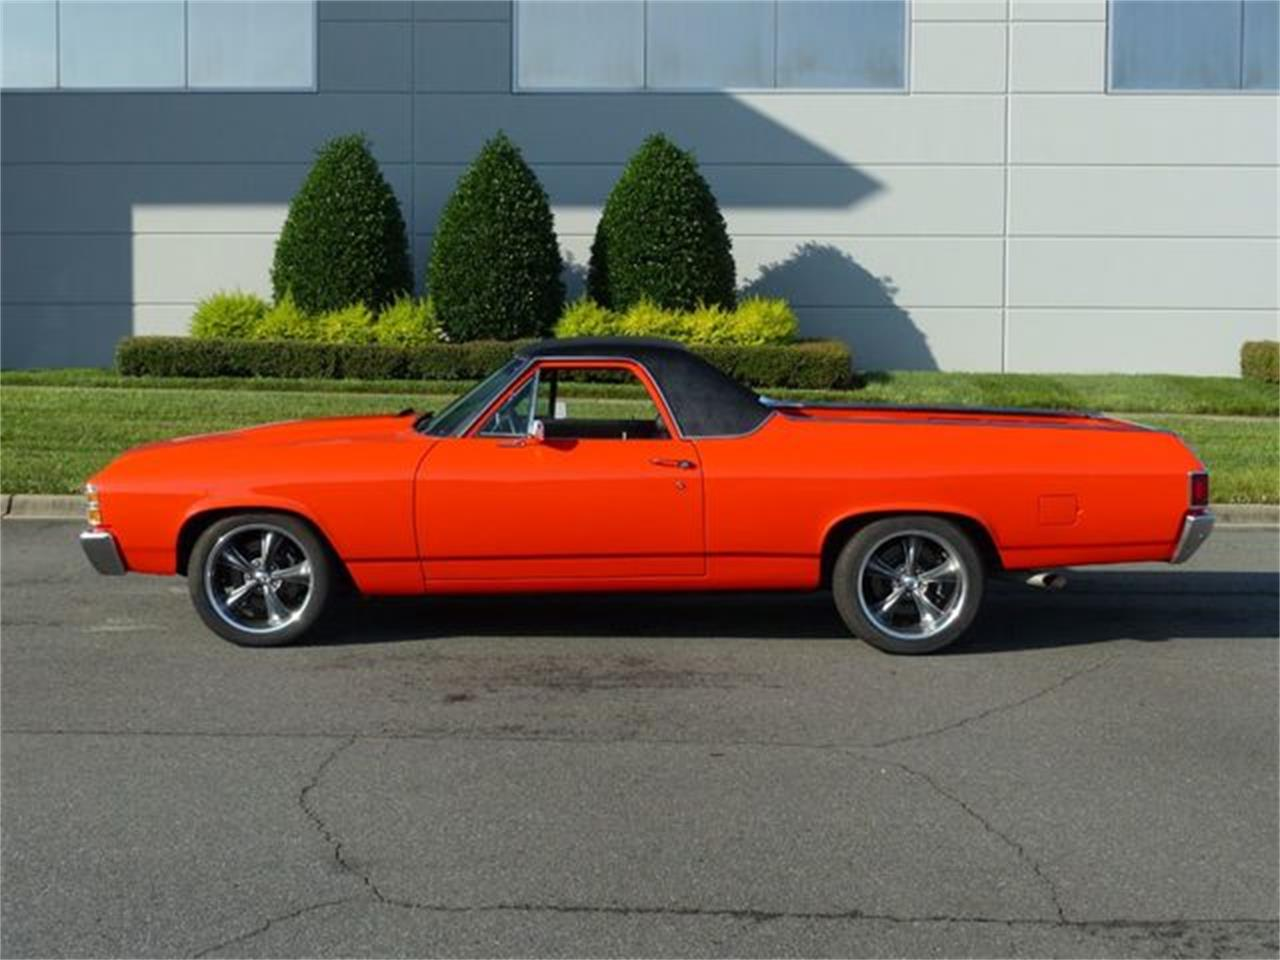 1971 Chevrolet El Camino (CC-1390812) for sale in Charlotte, North Carolina